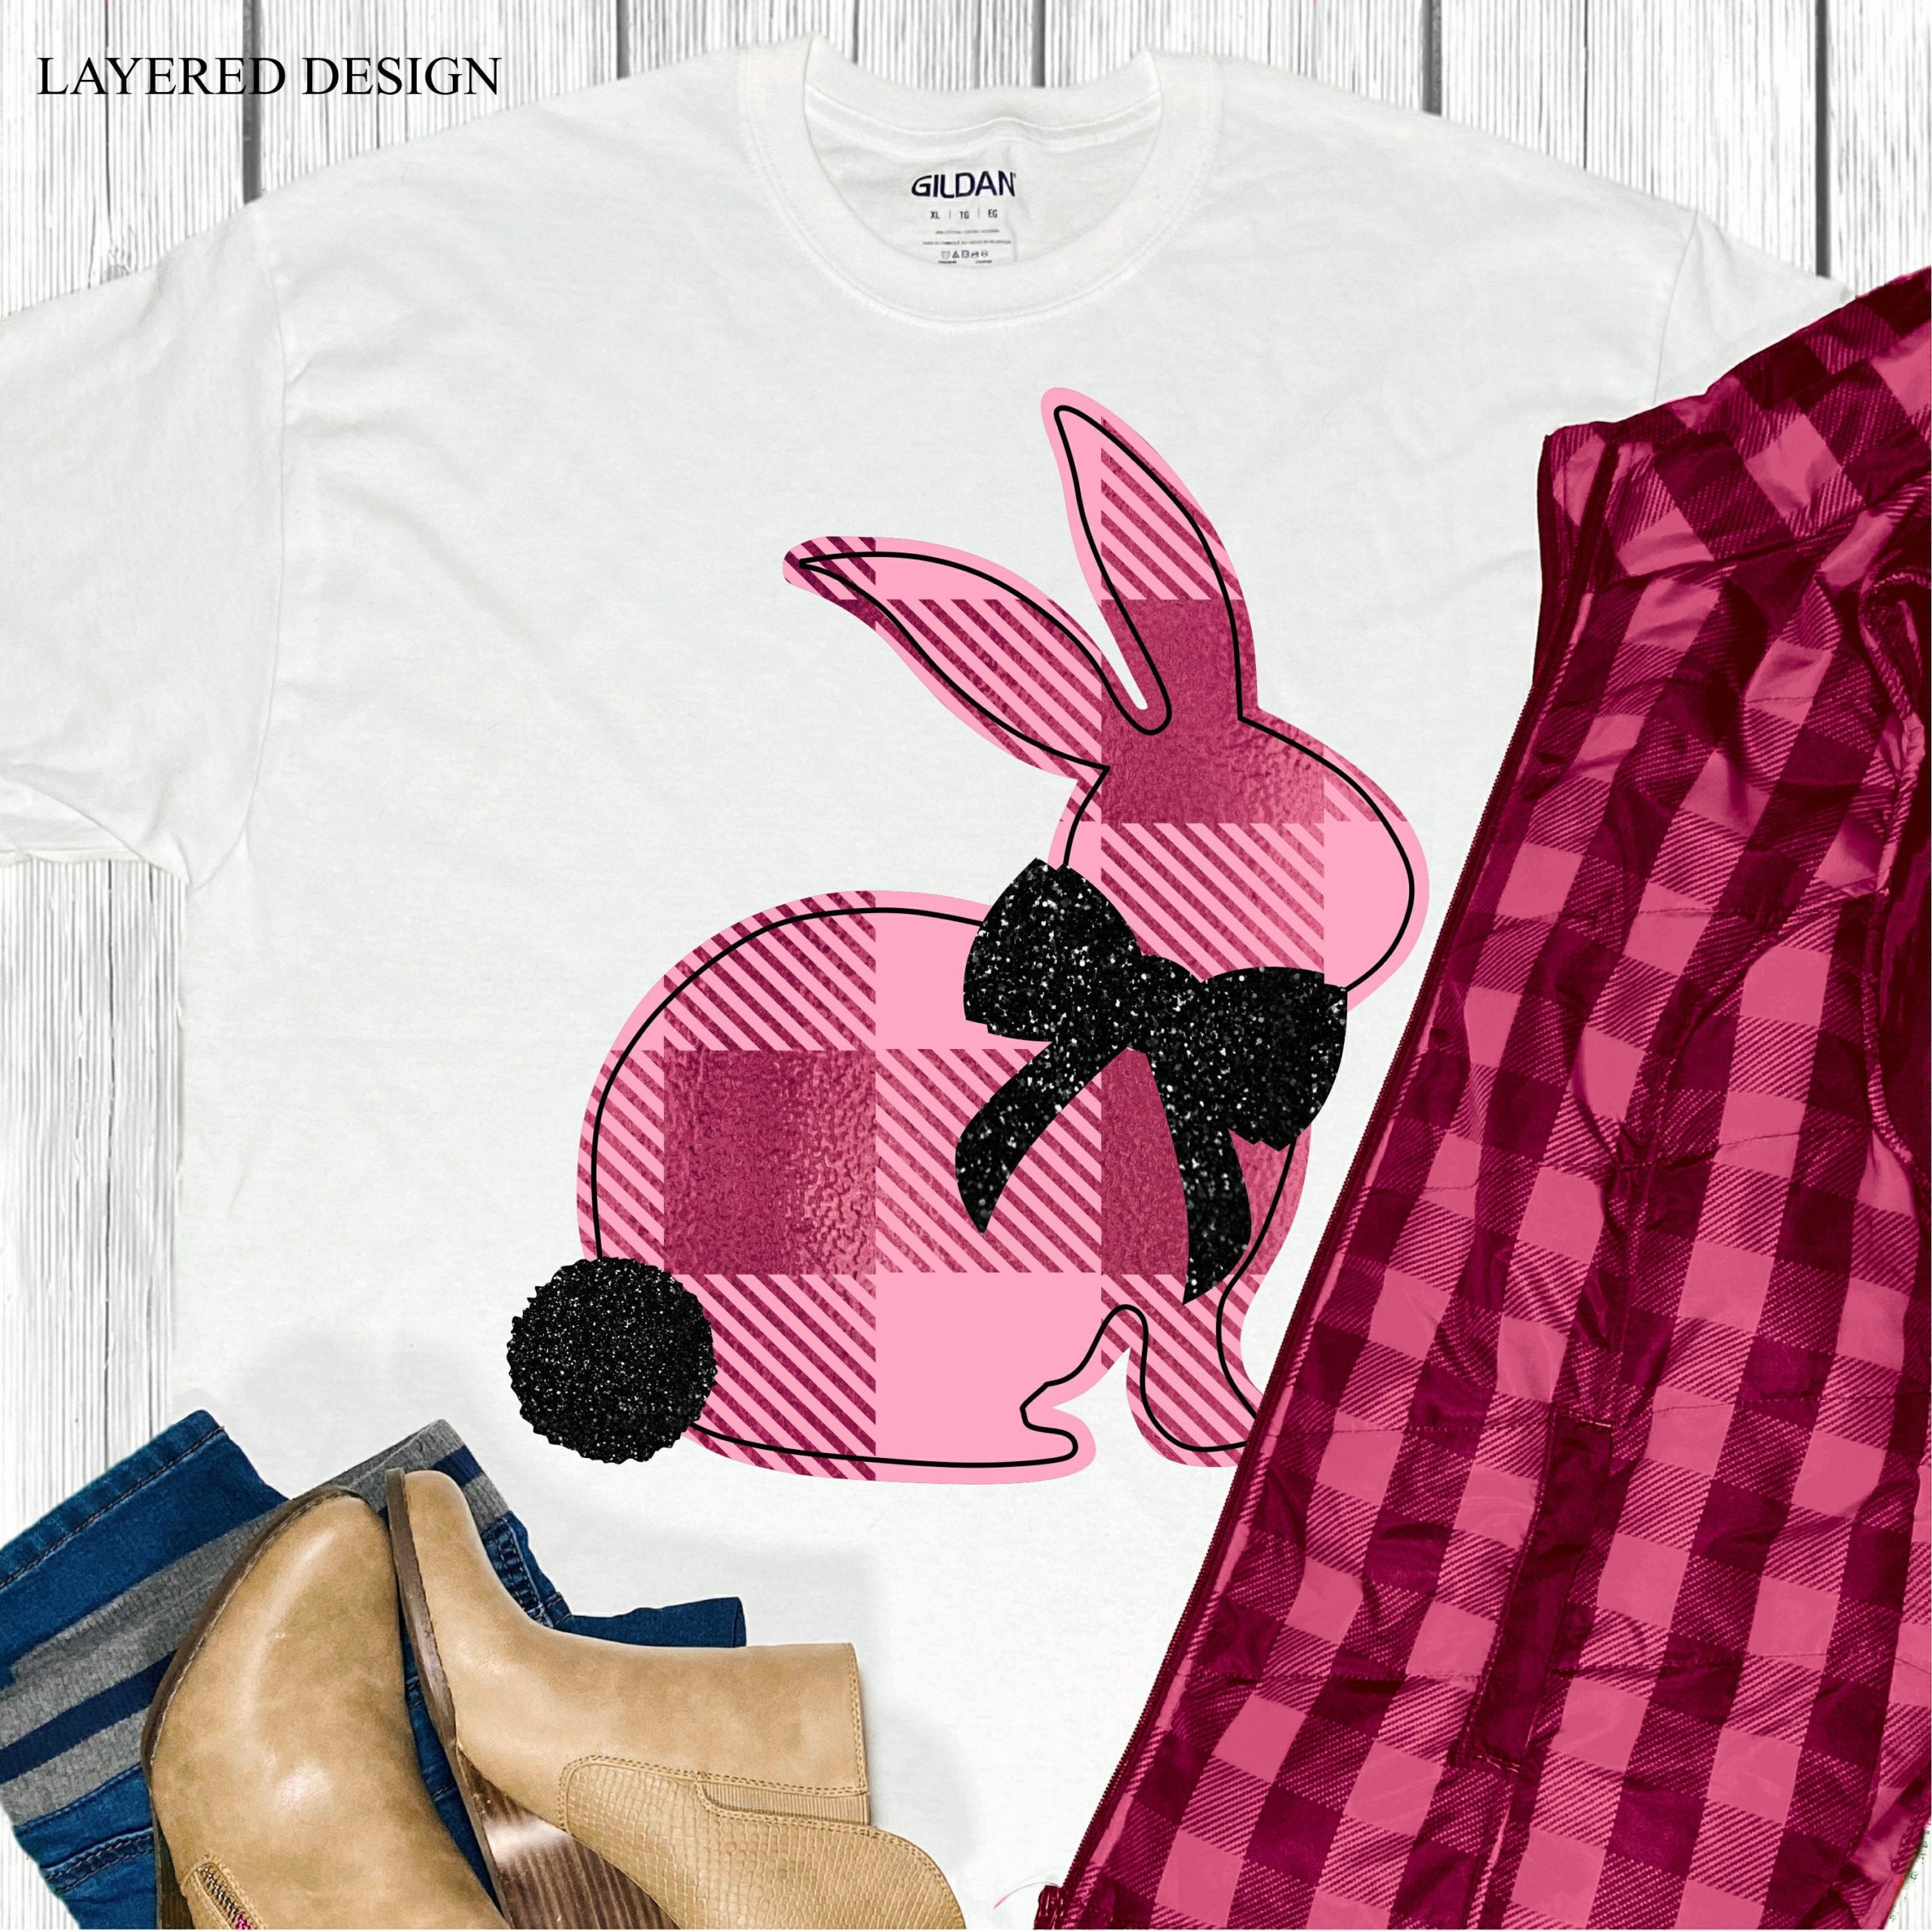 Plaid-print-bunny-svgdxf-png-eps-file-for-cutting-machines-cameo-cricut-easter-svg-designs-easter-cut-file-cricut-svg-60513d4d